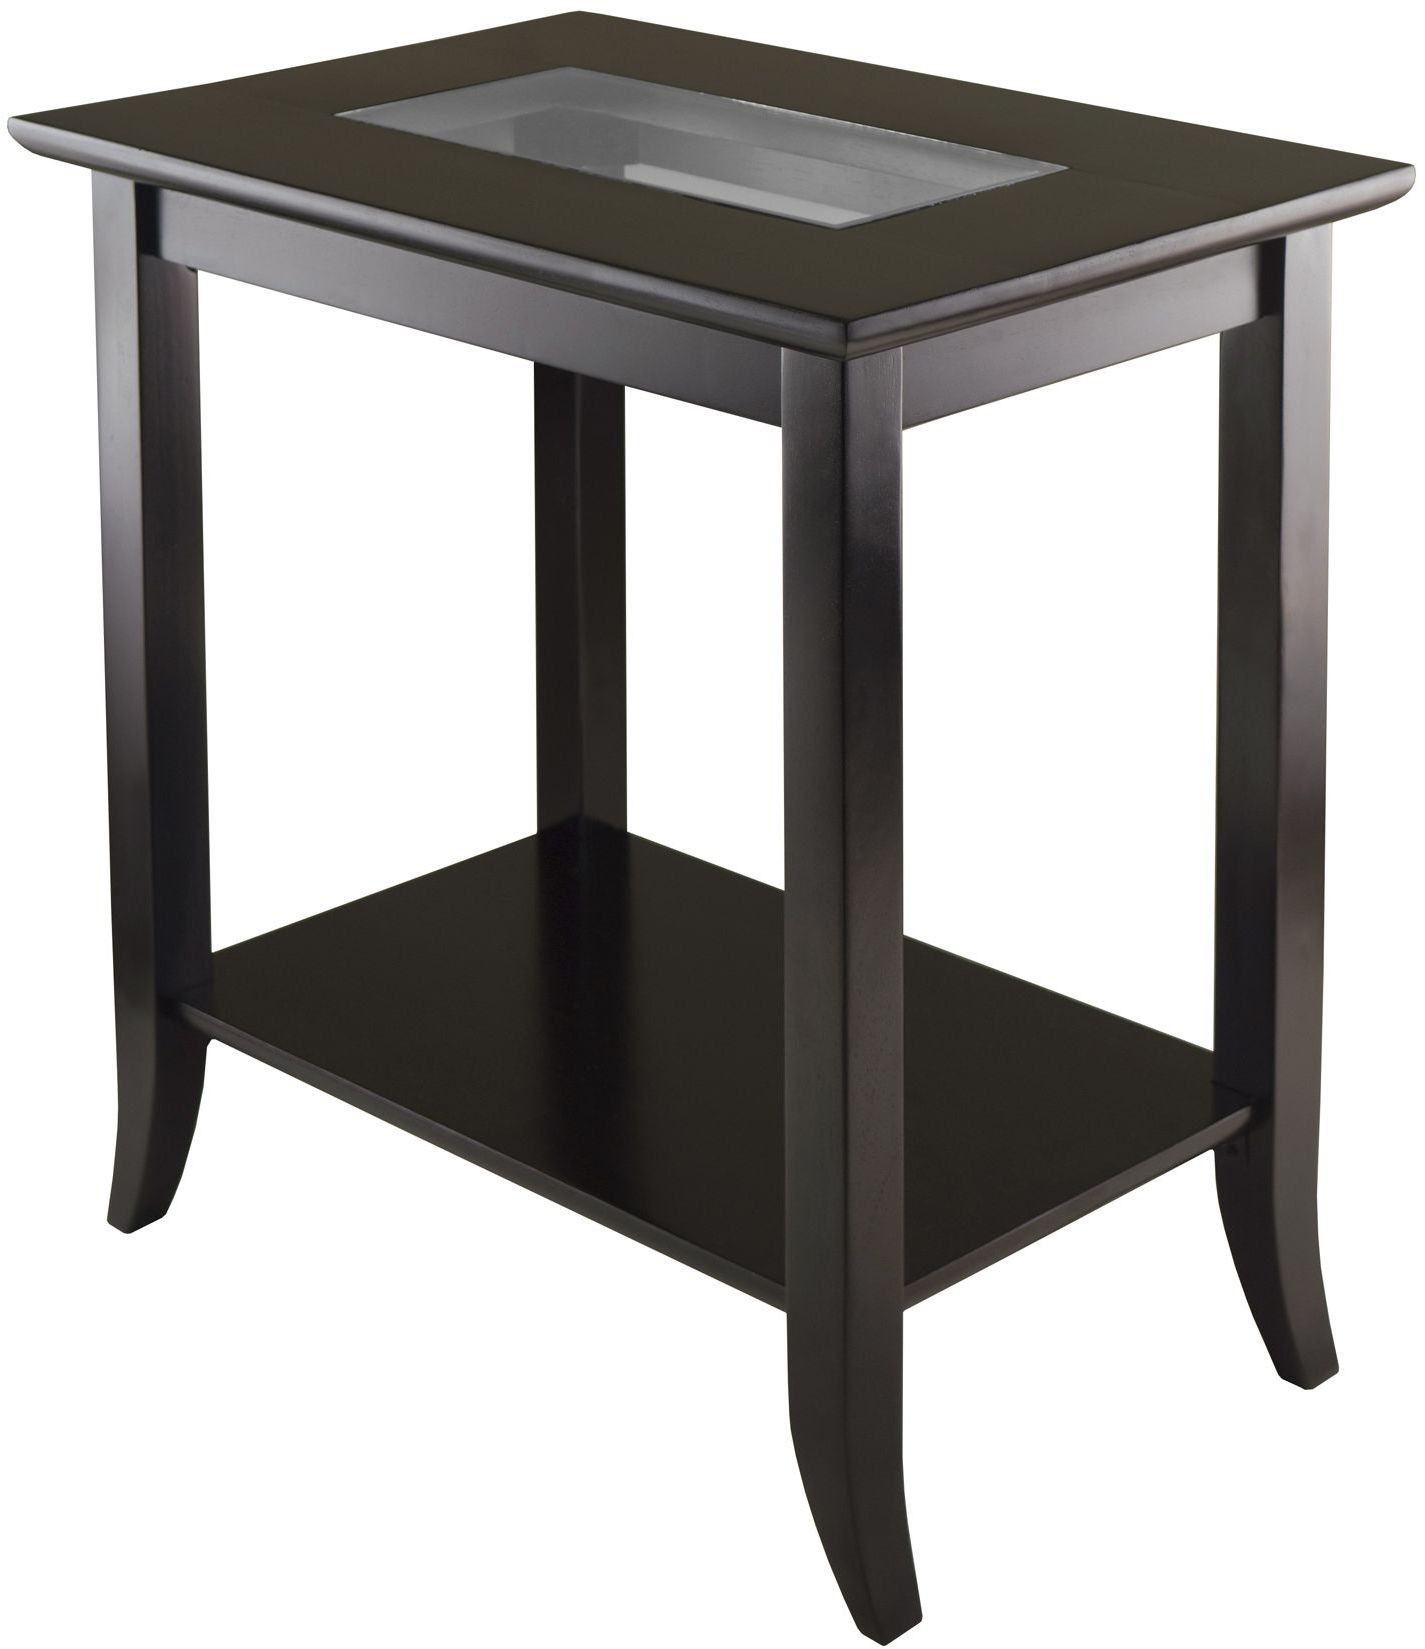 Genoa Rectangular End Table From Winsomewood Coleman Furniture